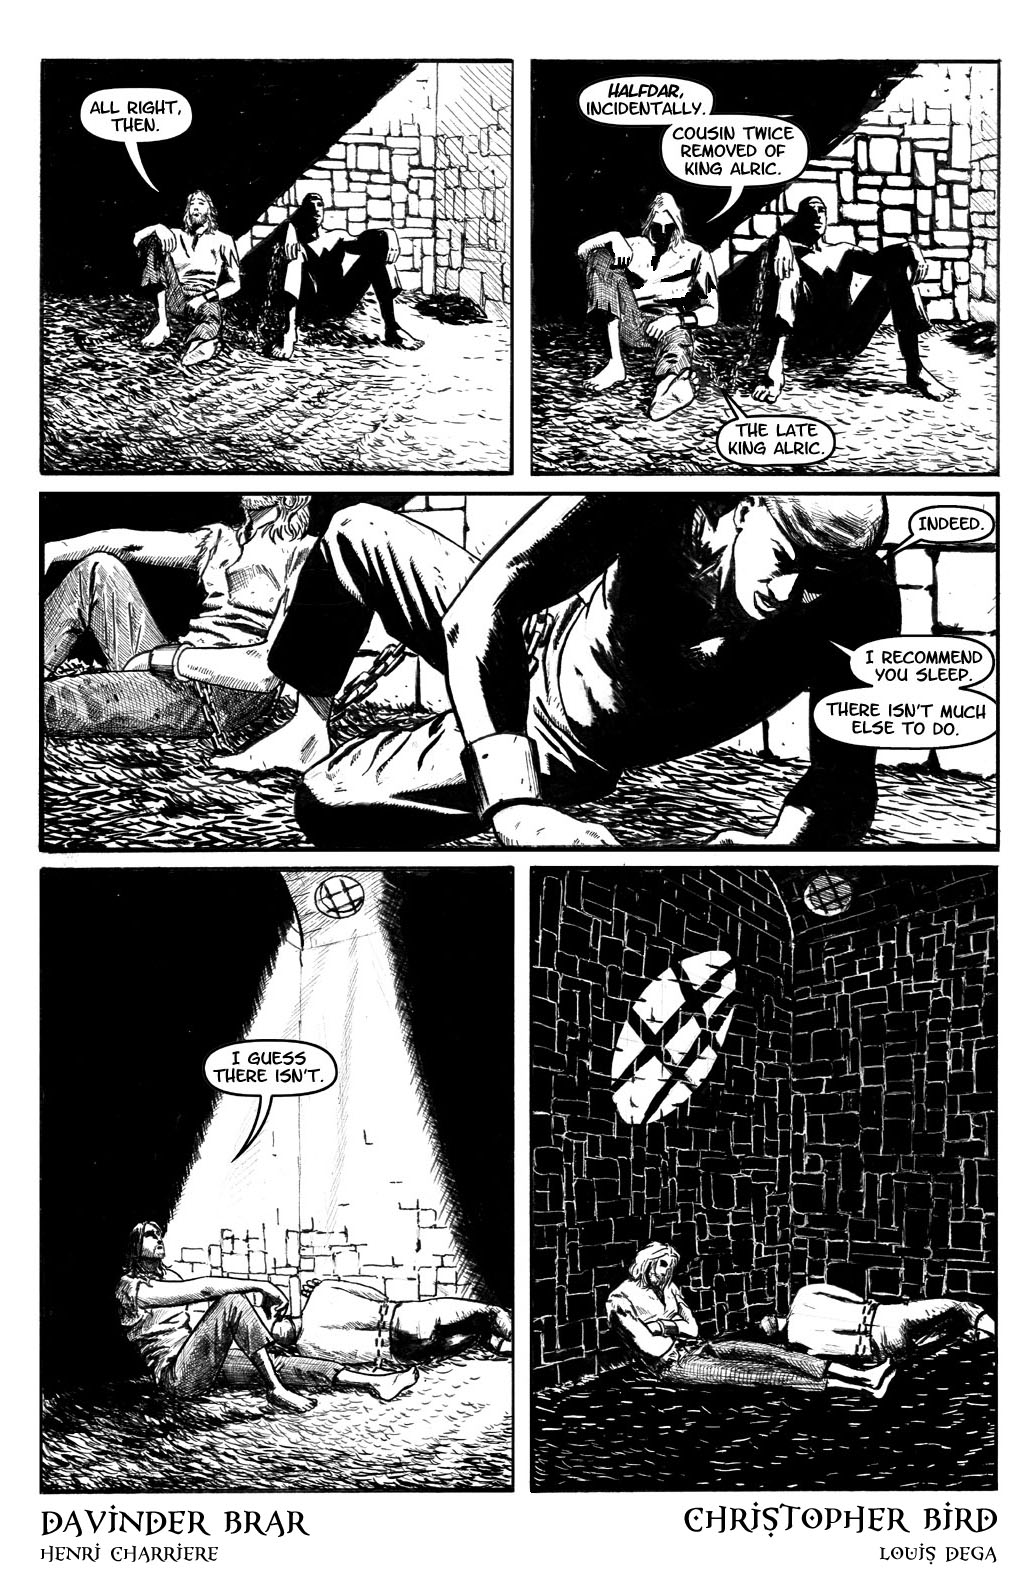 Book 2, page 5